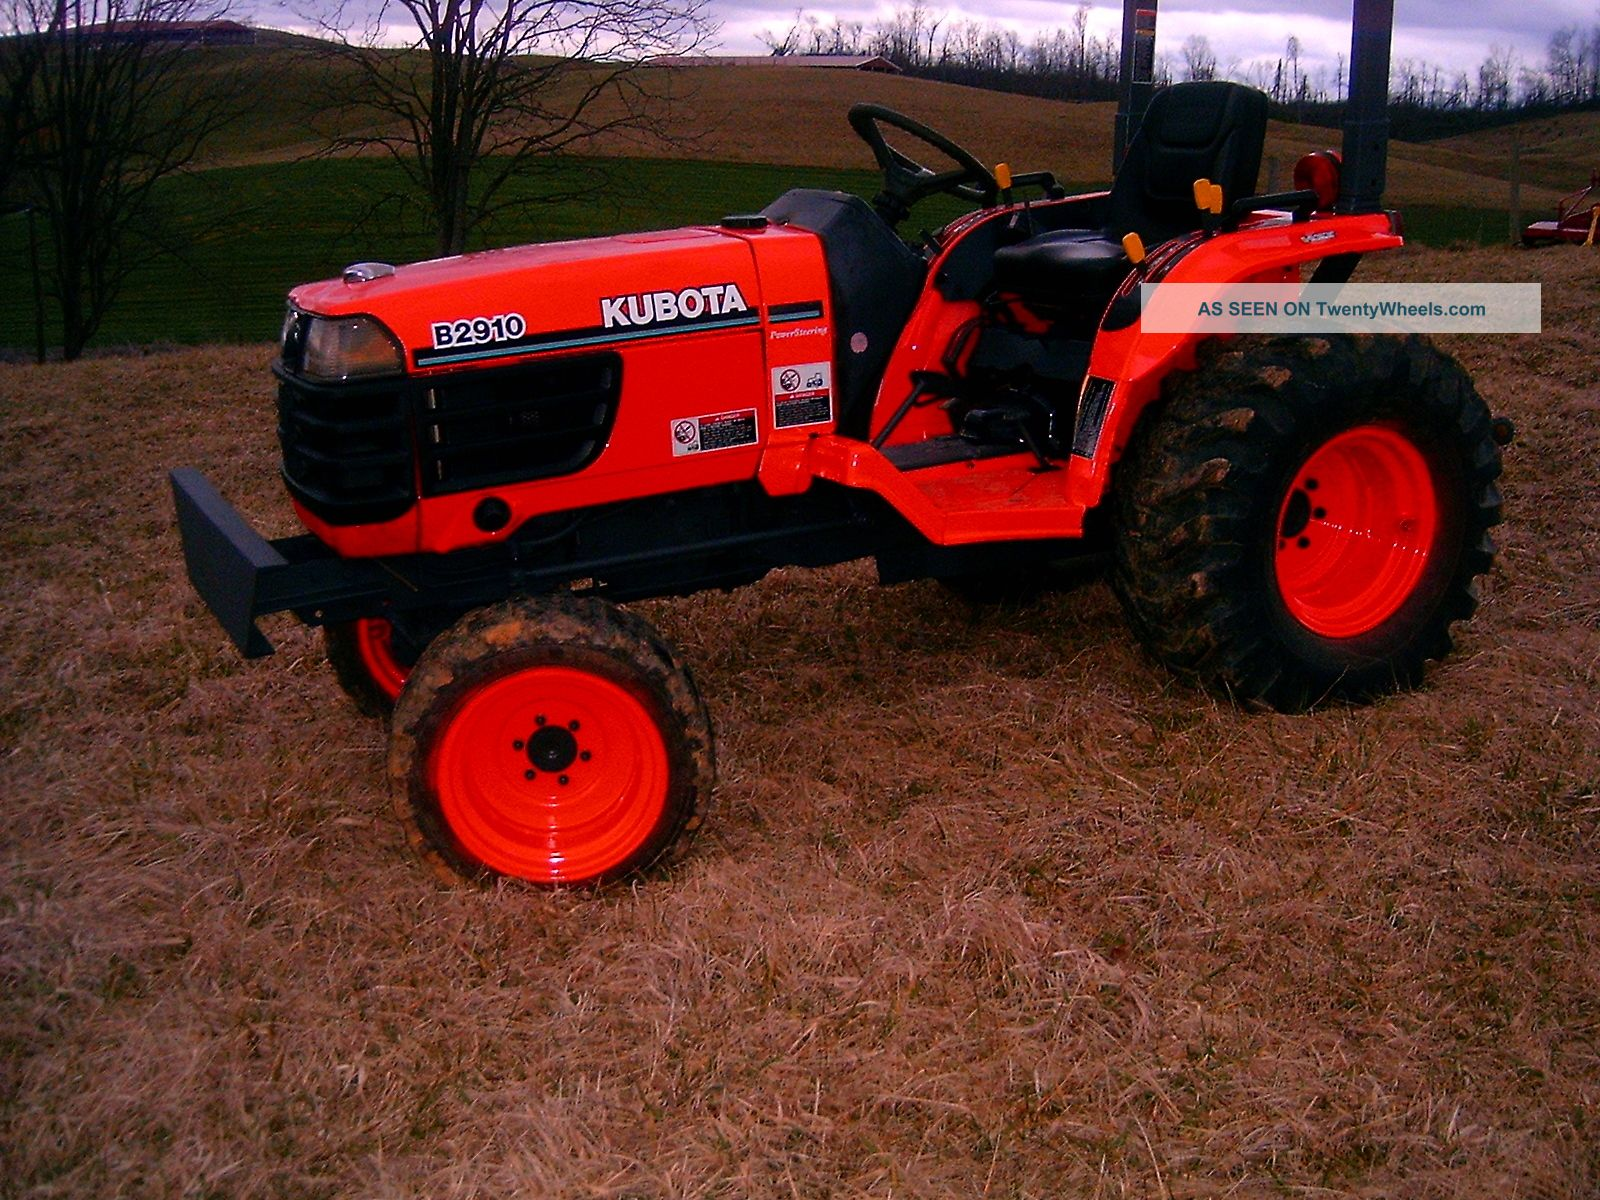 2002 Kubota B2910 4 Wheel Drive Compact Tractor With Hydrostatic Transmission Tractors photo